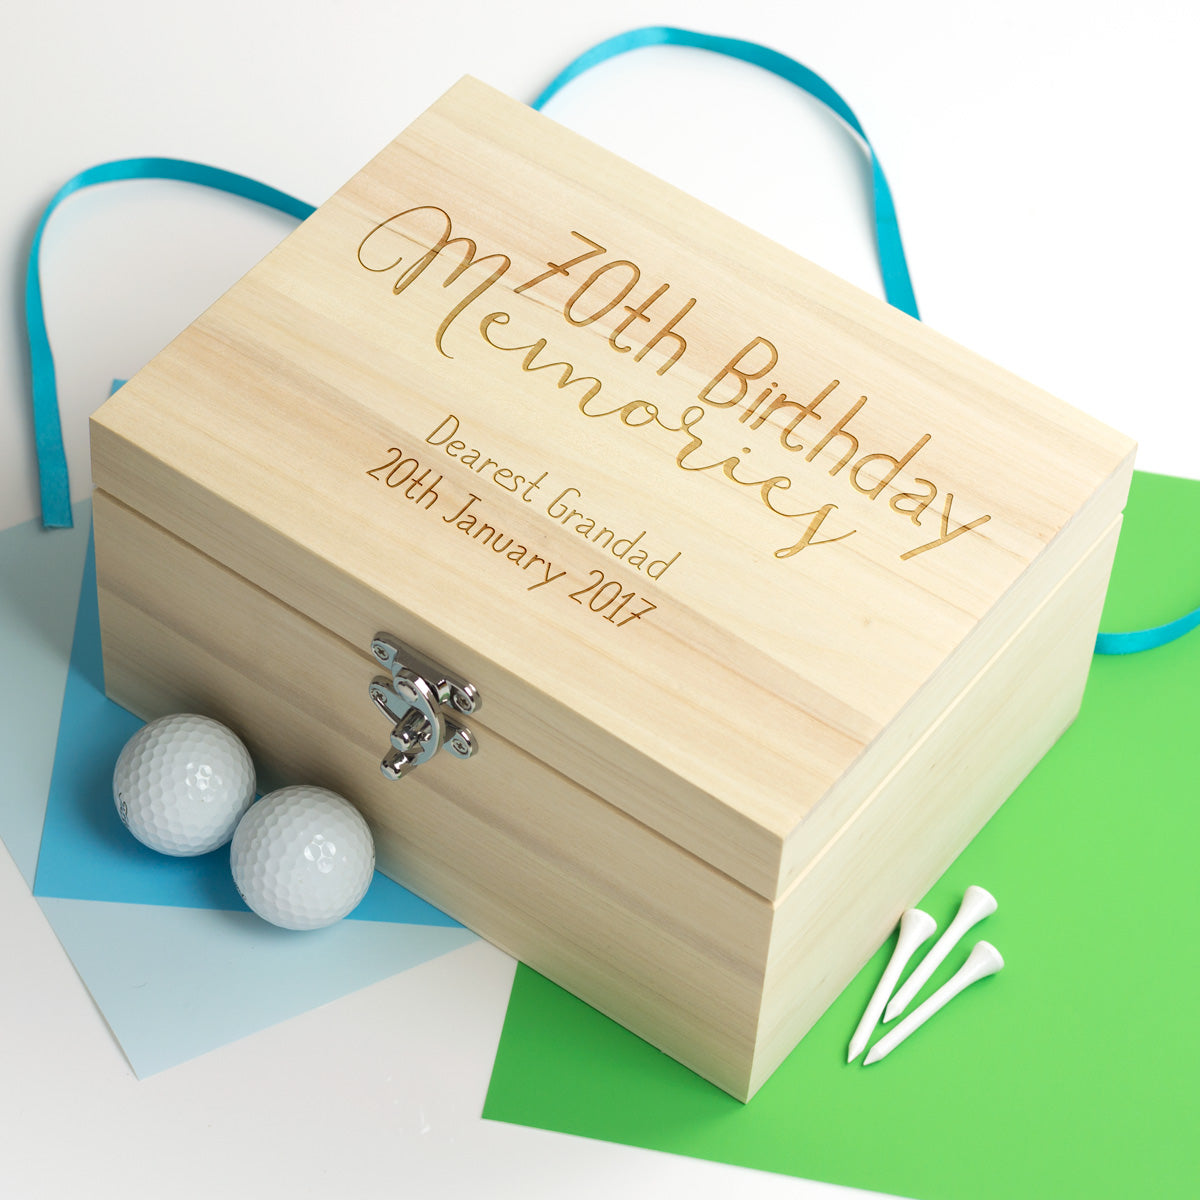 70th Birthday Memories Keepsake Box